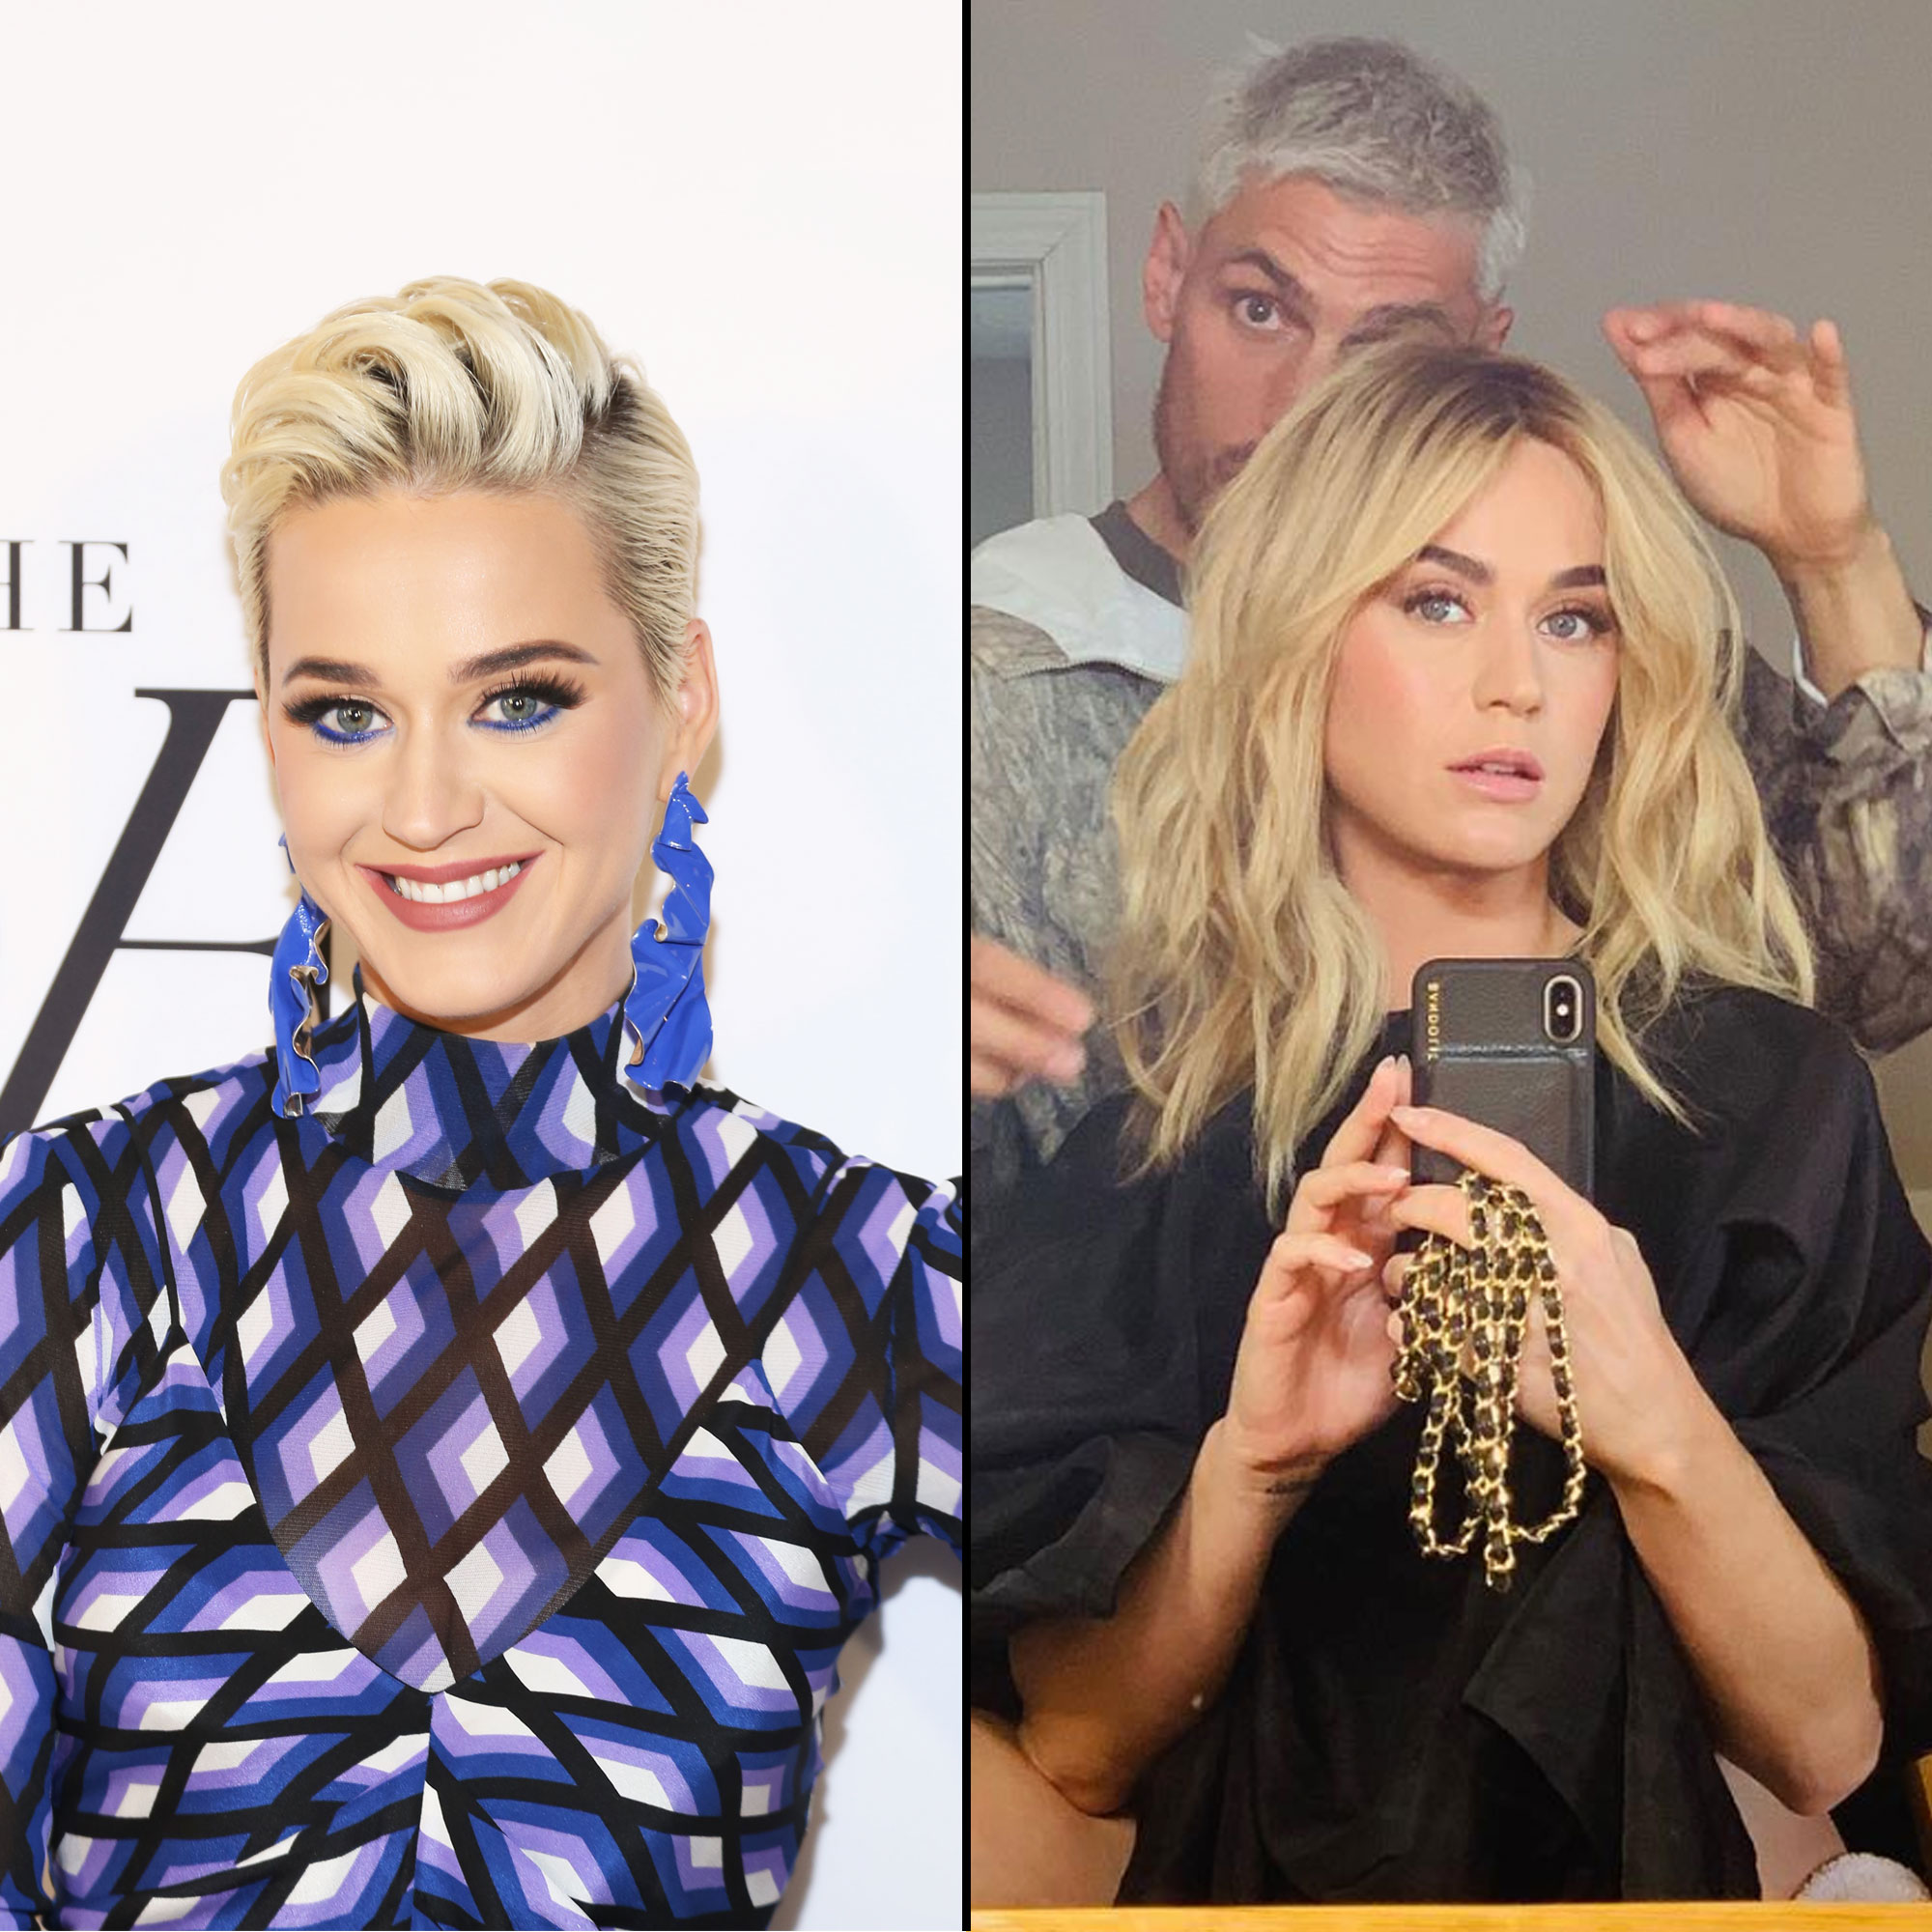 """Katy Perry wig blonde hair - Showing off another totally new hairstyle, on April 19, 2019, the """"Roar"""" singer posted an Instagram looking unrecognizable in a shoulder-length, wavy blonde wig."""